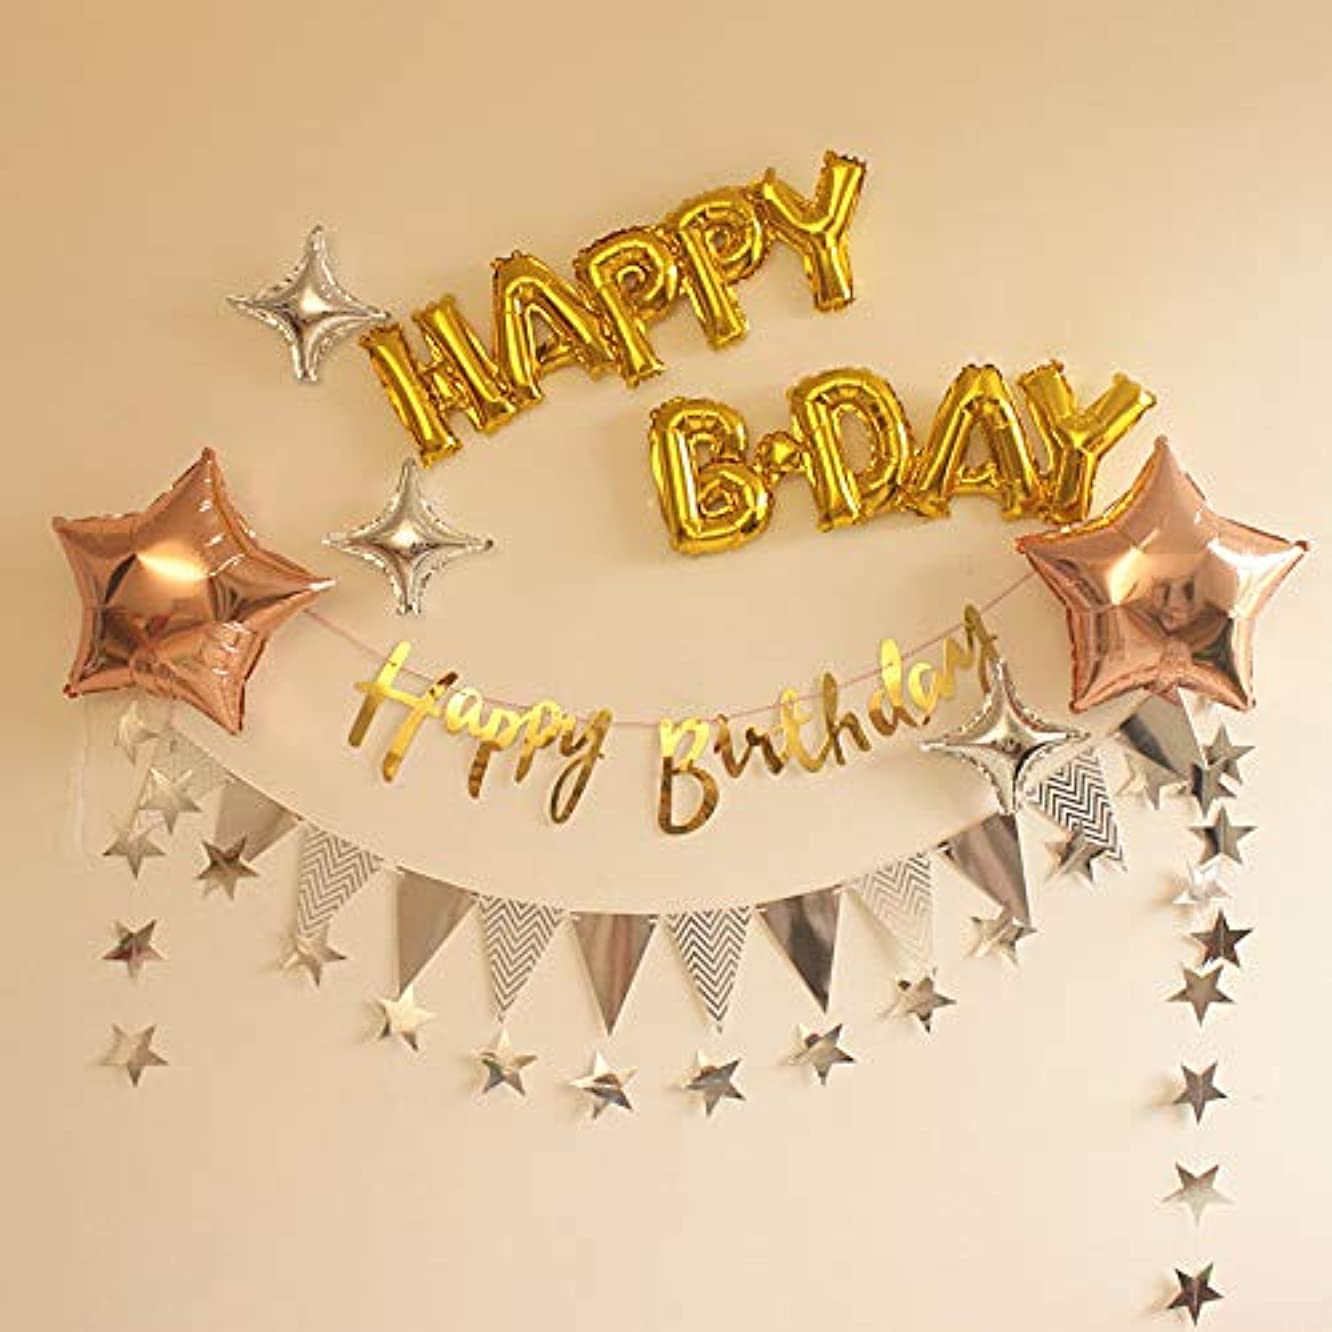 Happy Bday Stars Foil Balloons Paper Garland Bunting Banner Hanging for Birthday Party Show Window Dressing Anniversary Decoration (Happy B-Day)